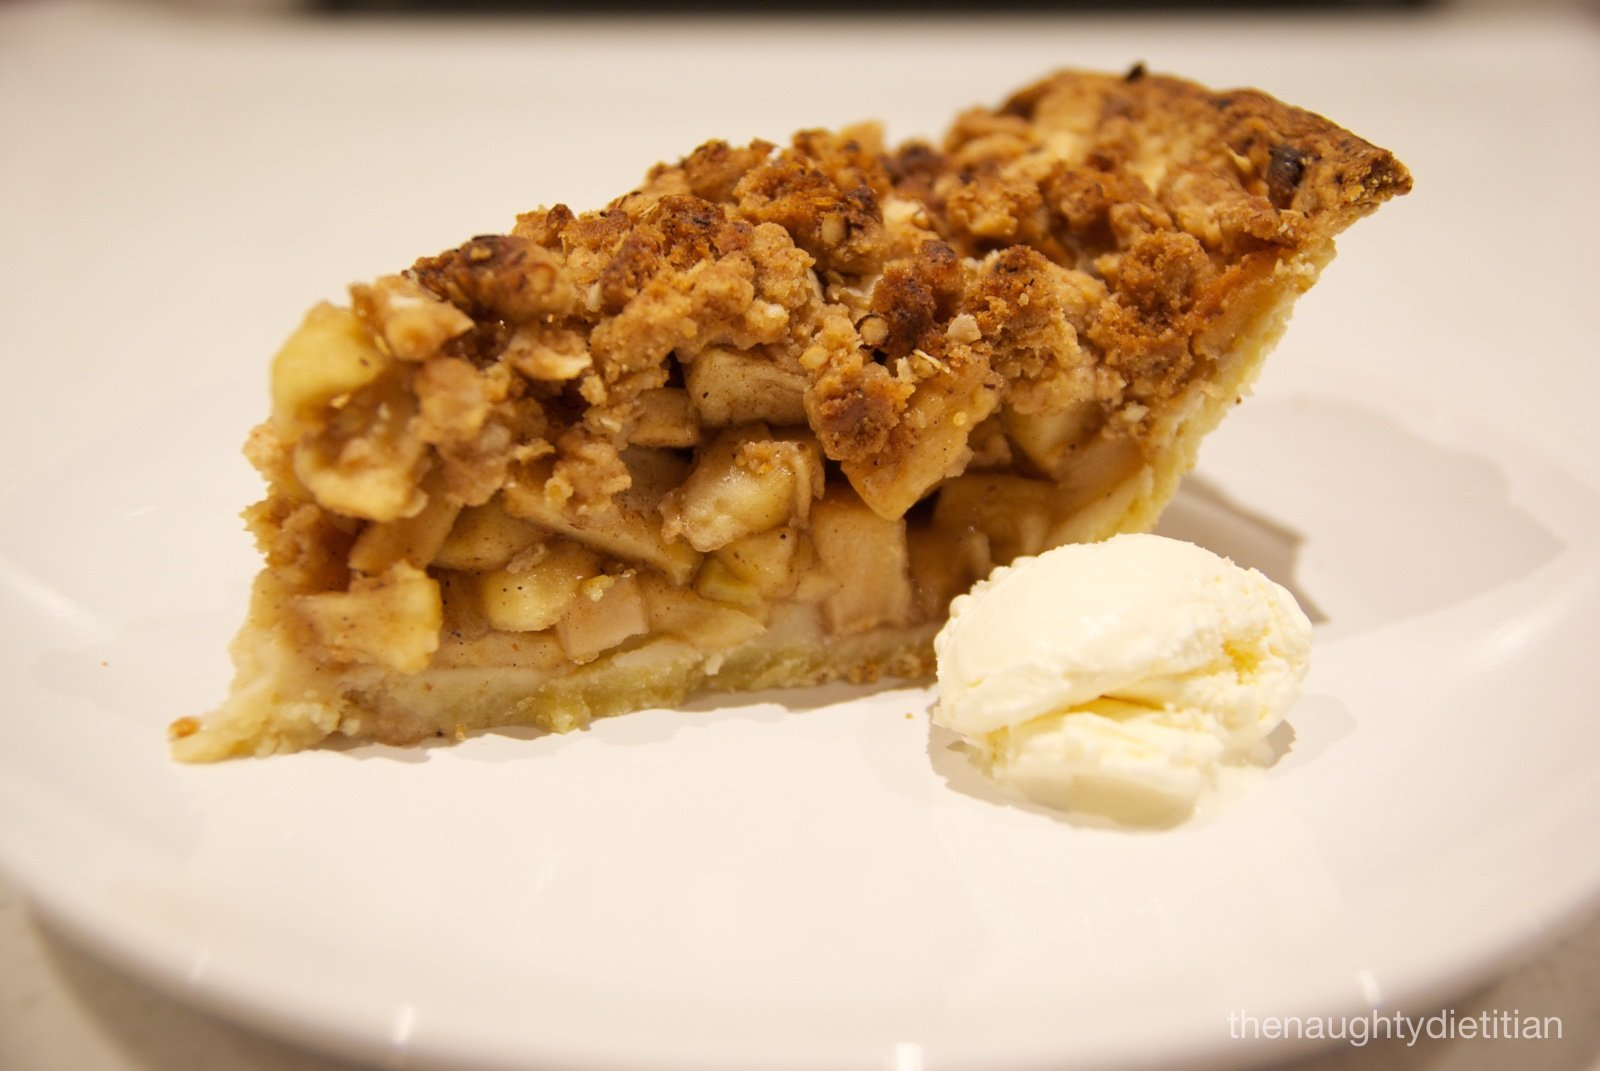 Apple Pie with Cinnamon Crumble (Gluten Free)